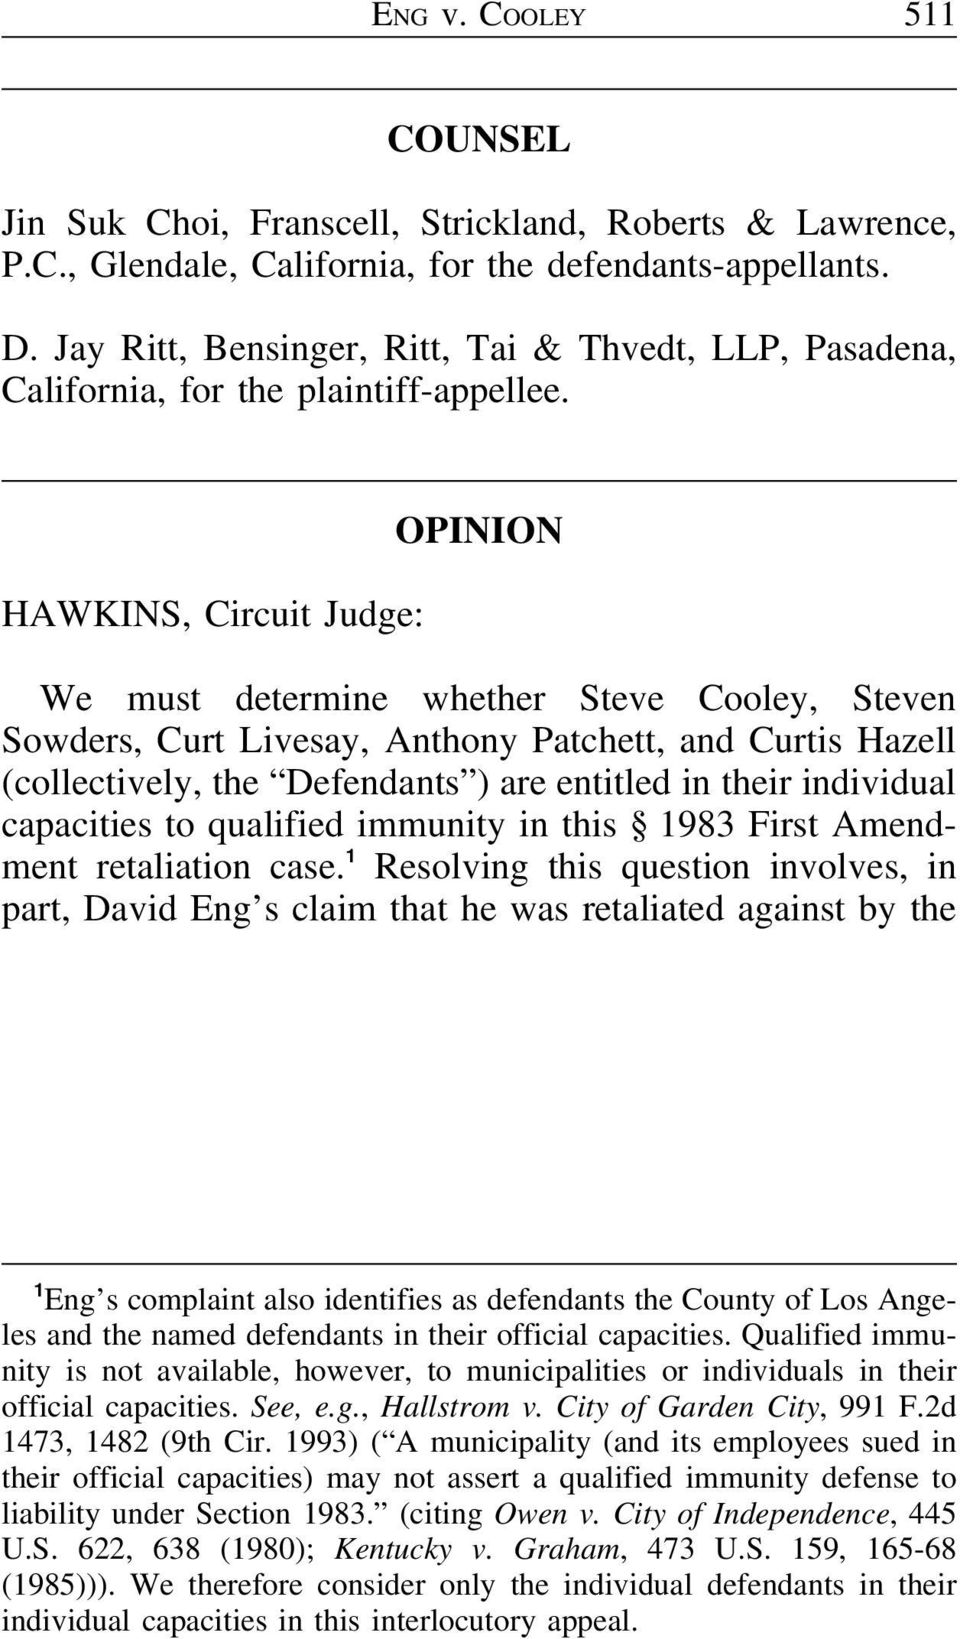 HAWKINS, Circuit Judge: OPINION We must determine whether Steve Cooley, Steven Sowders, Curt Livesay, Anthony Patchett, and Curtis Hazell (collectively, the Defendants ) are entitled in their